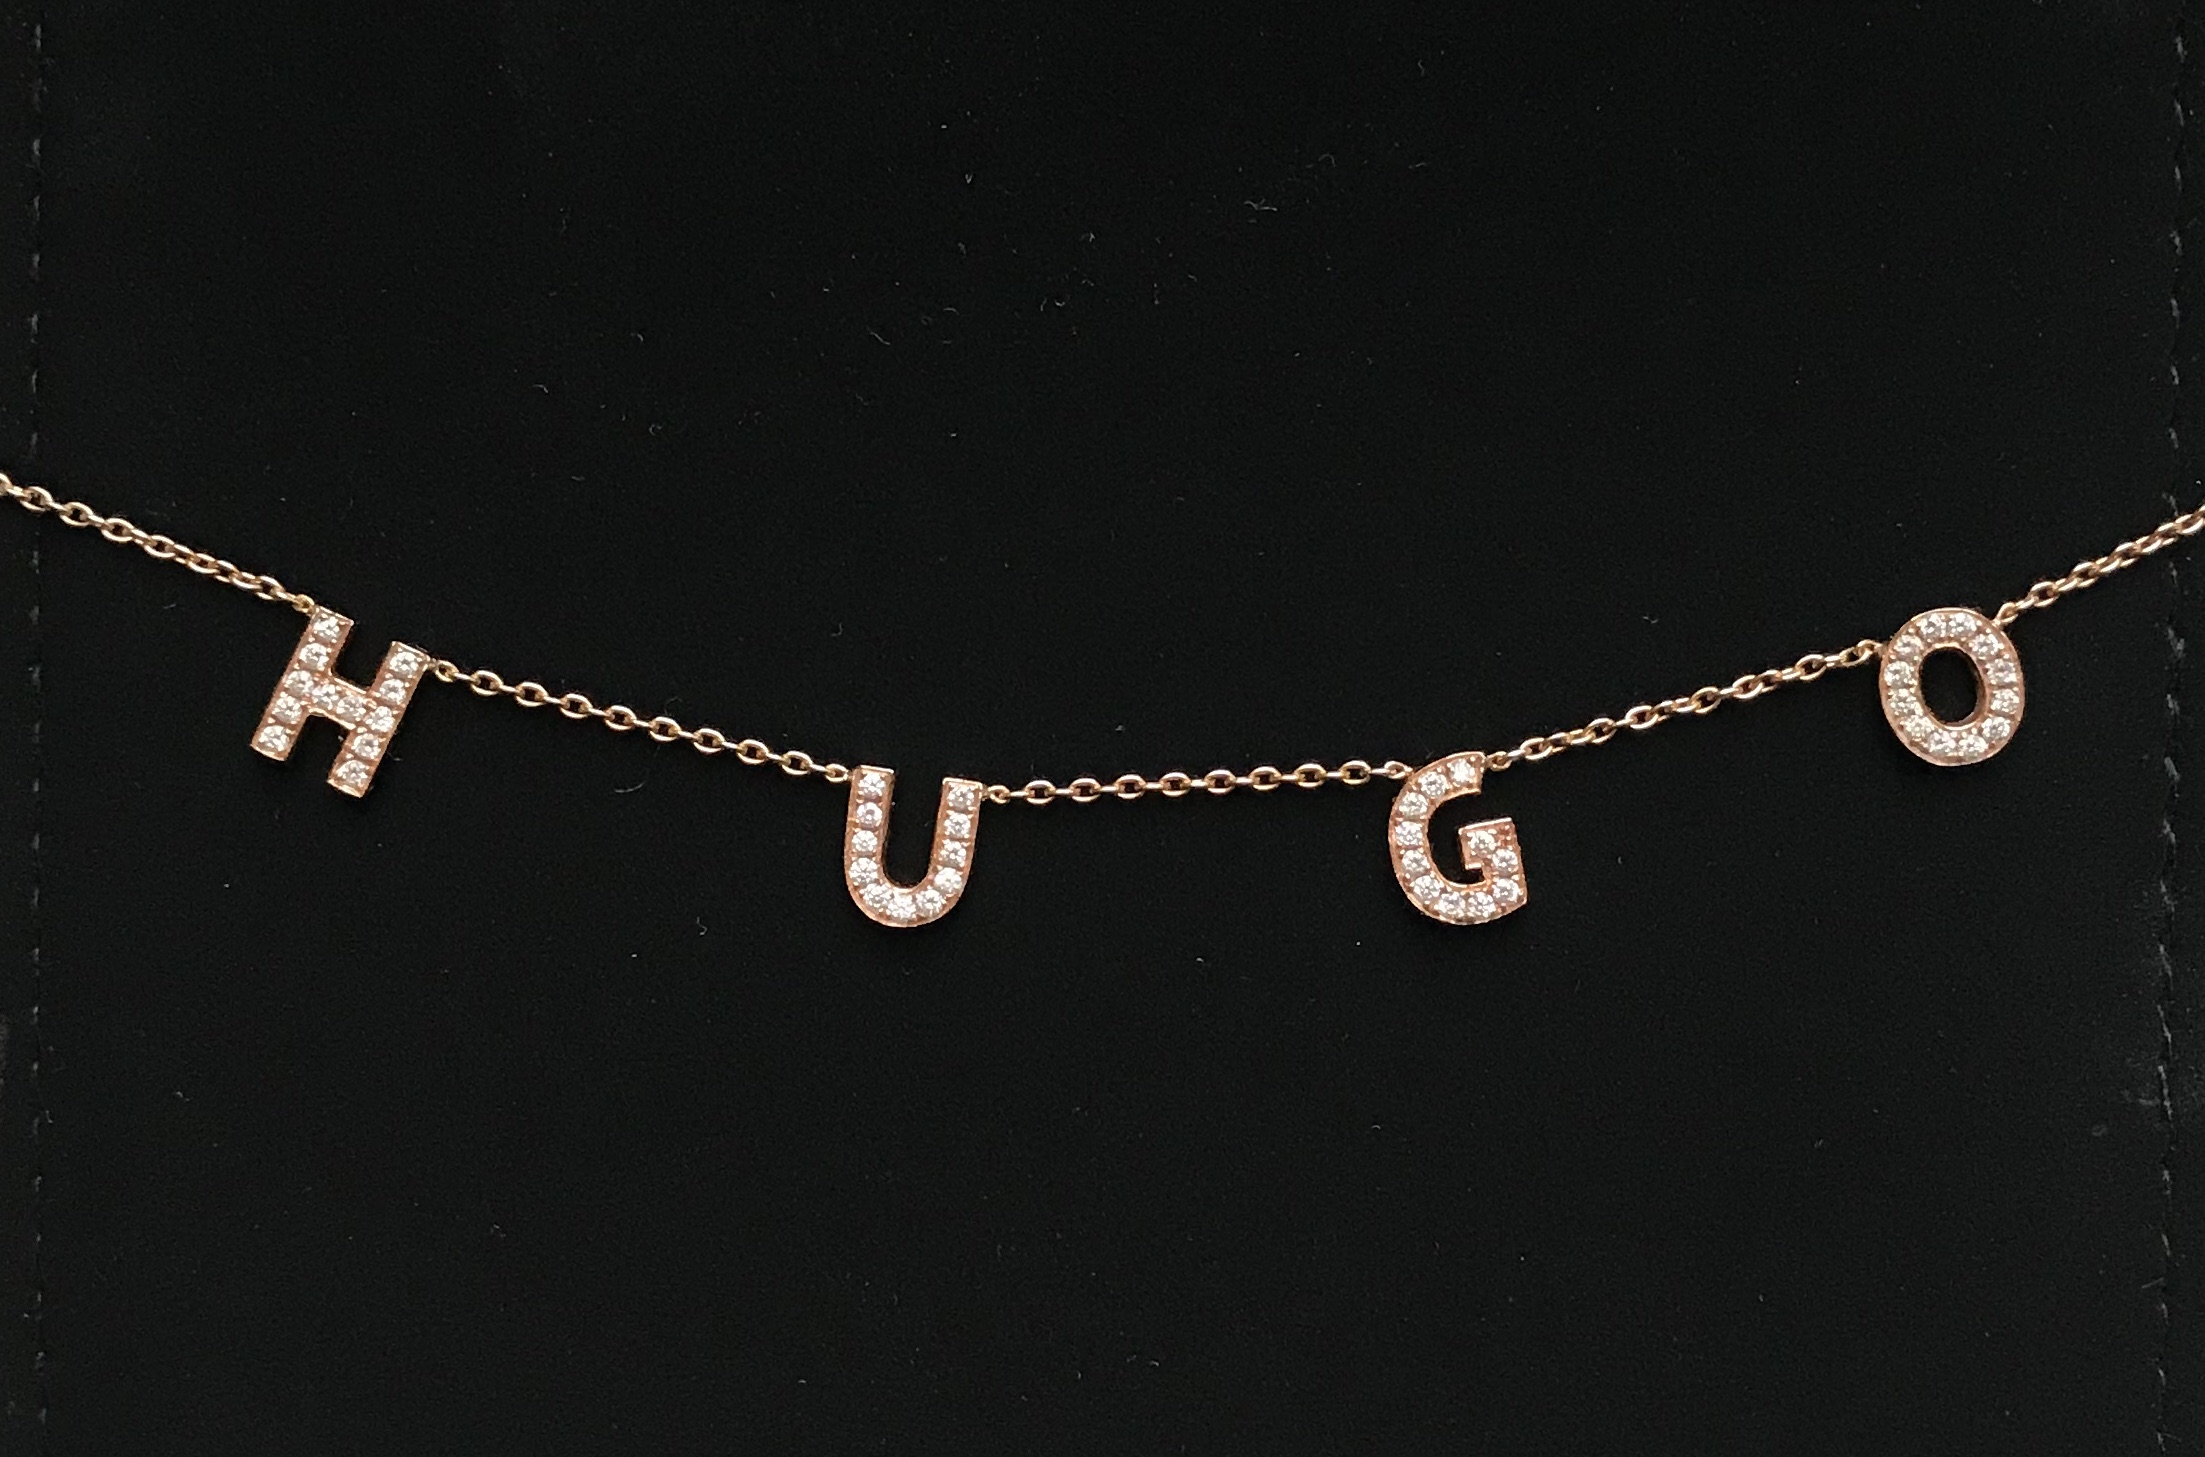 Custom Name Necklace - $325 per letter, Diamond & Gold (Yellow, White, Rose)